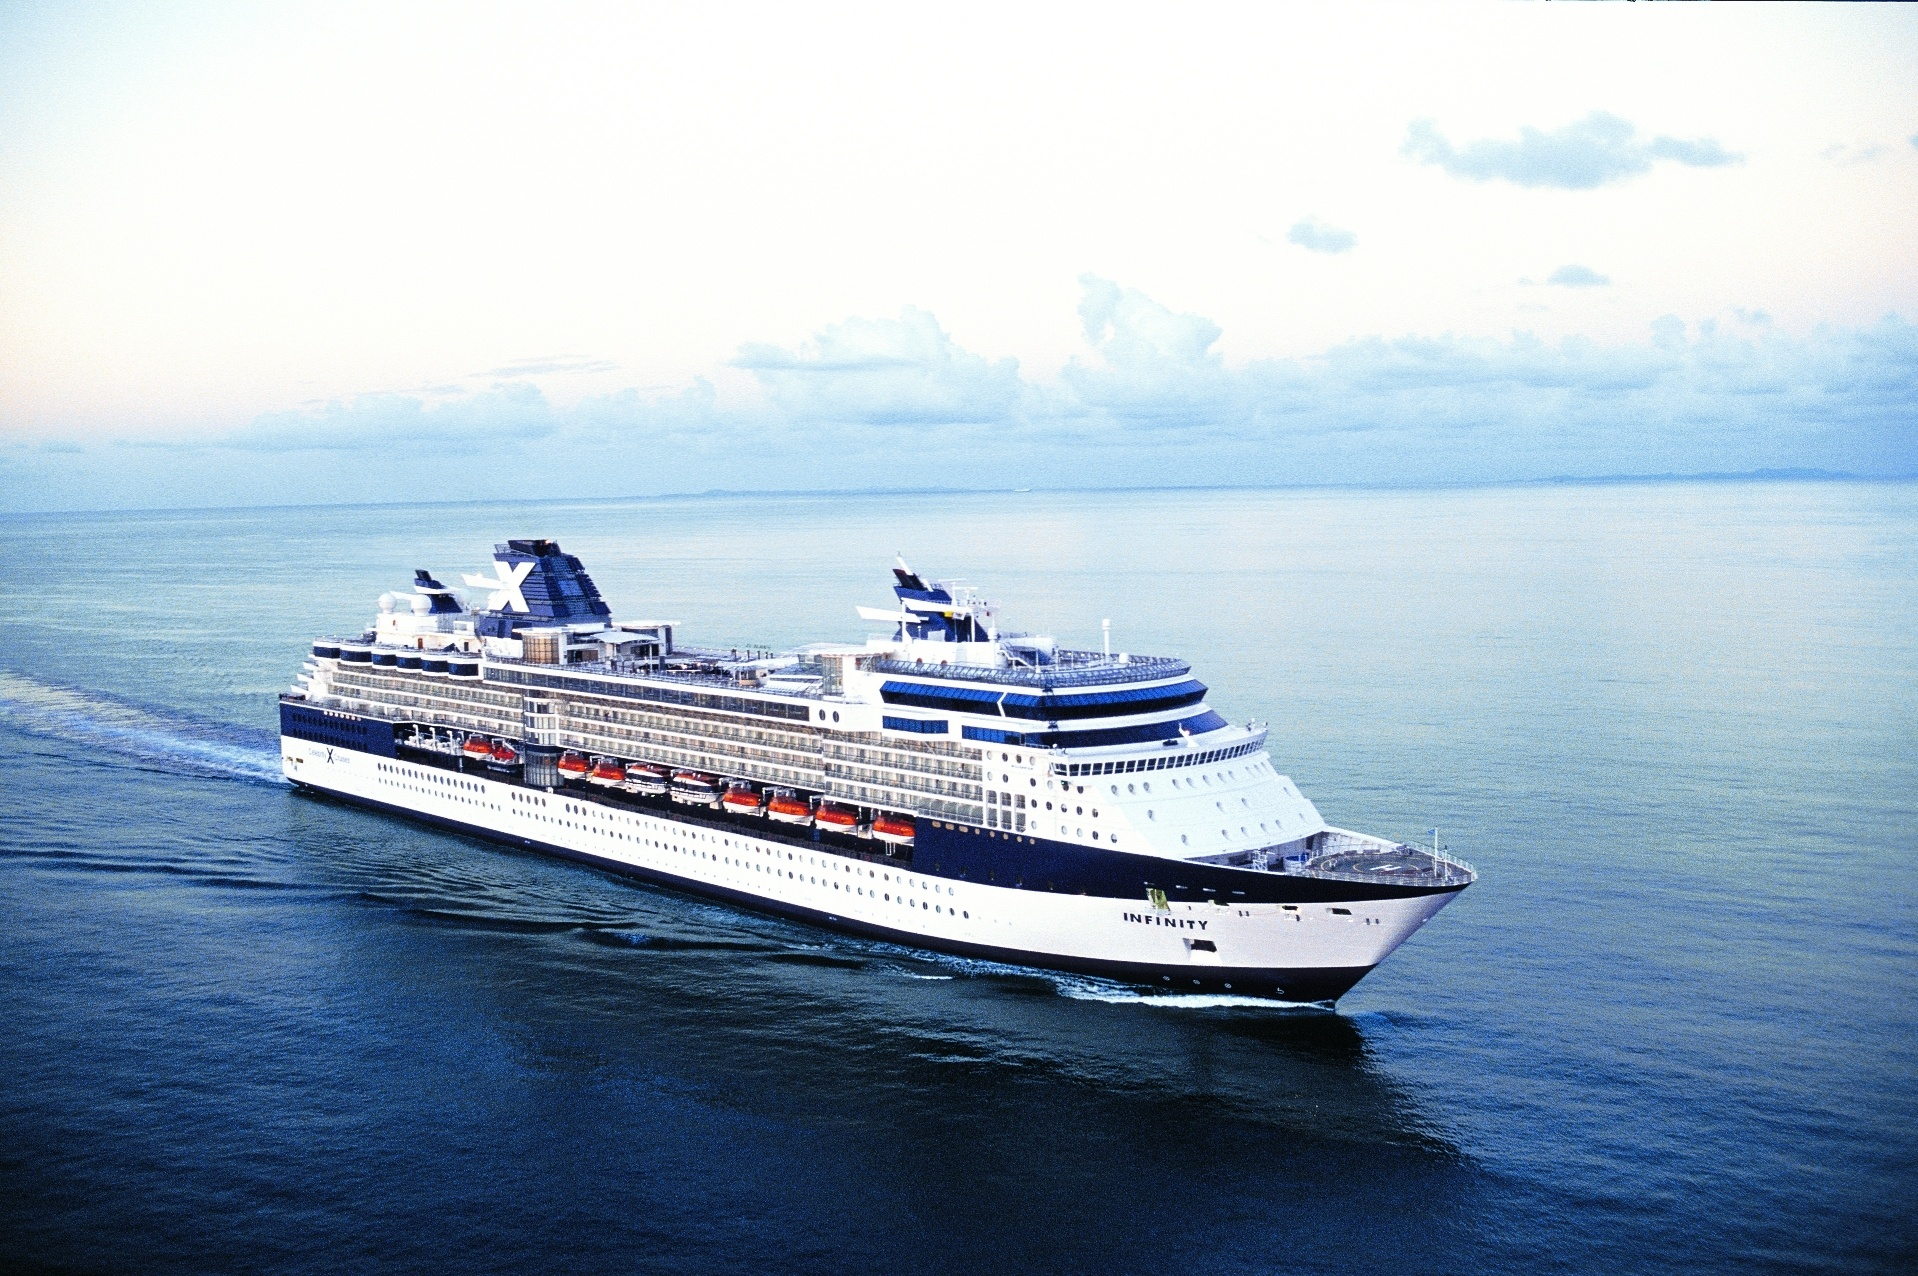 List of Cruise Lines that Offer Rebooking and Refund2